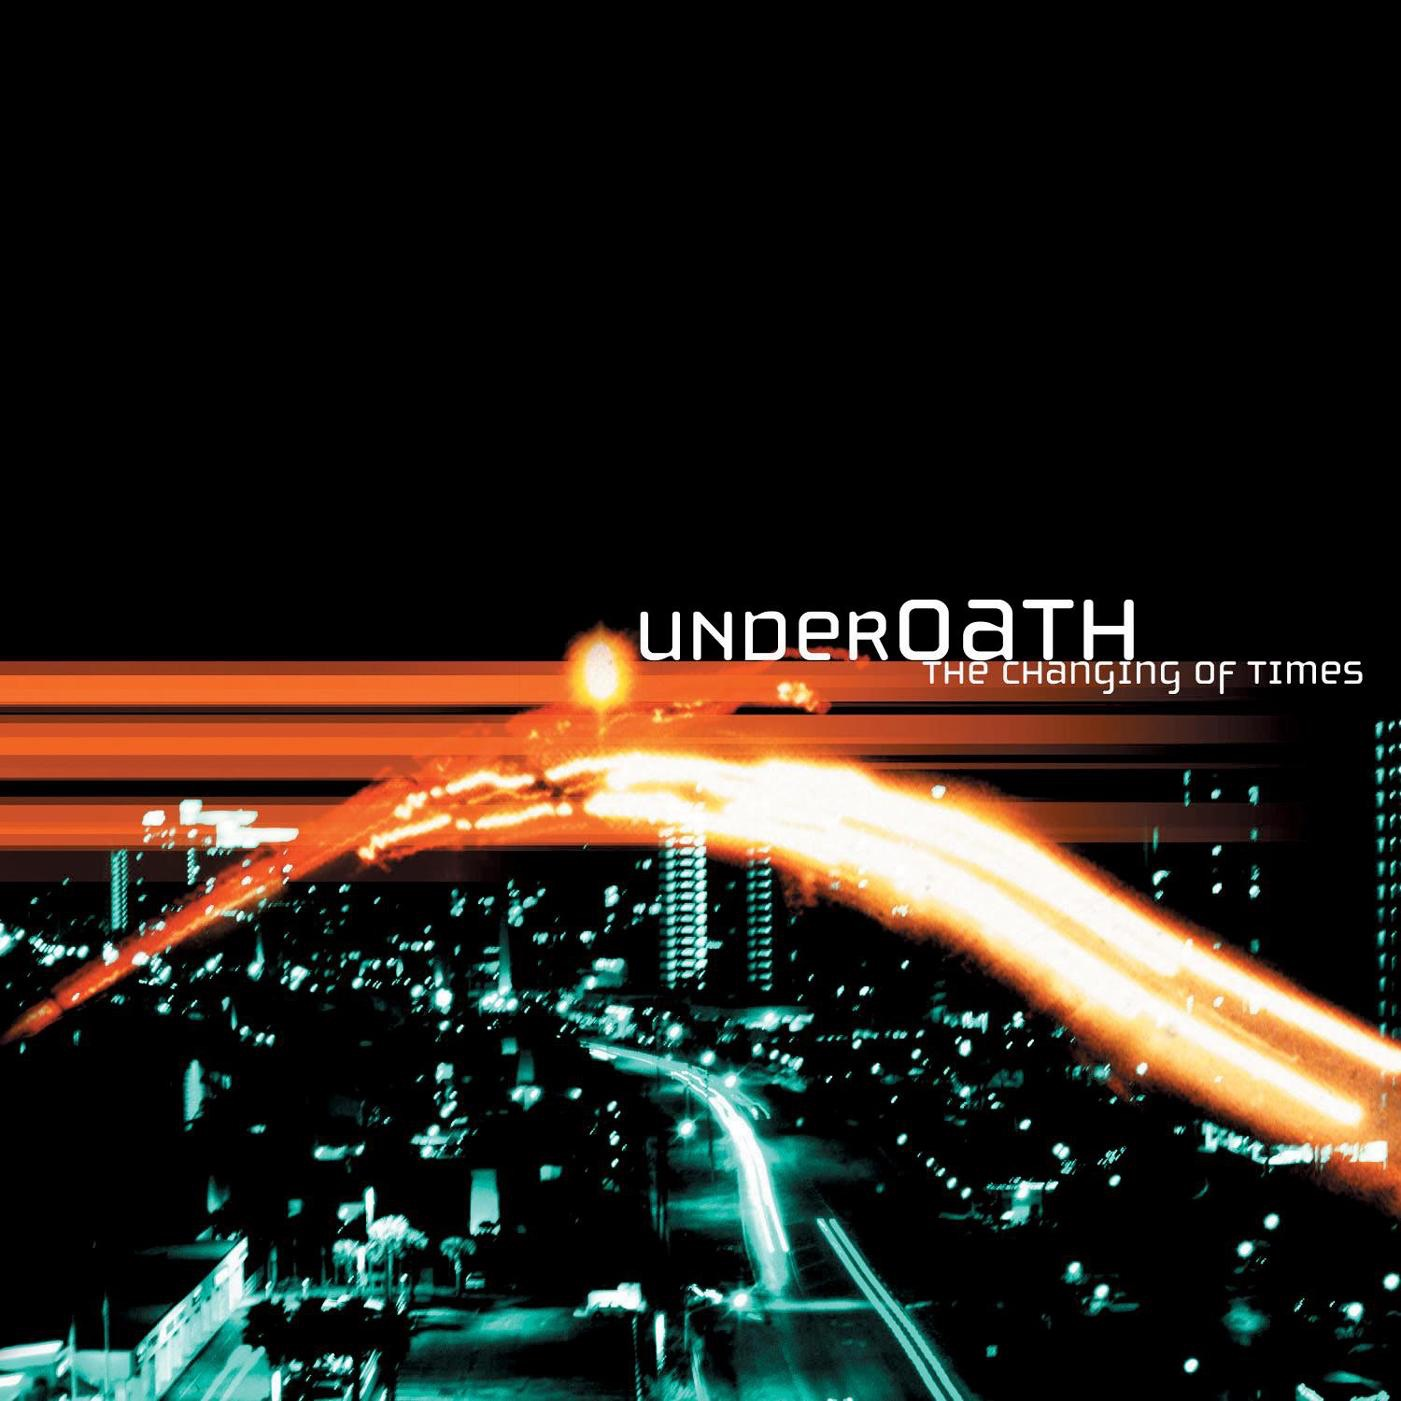 Underoath - The Changing of Times (2002)